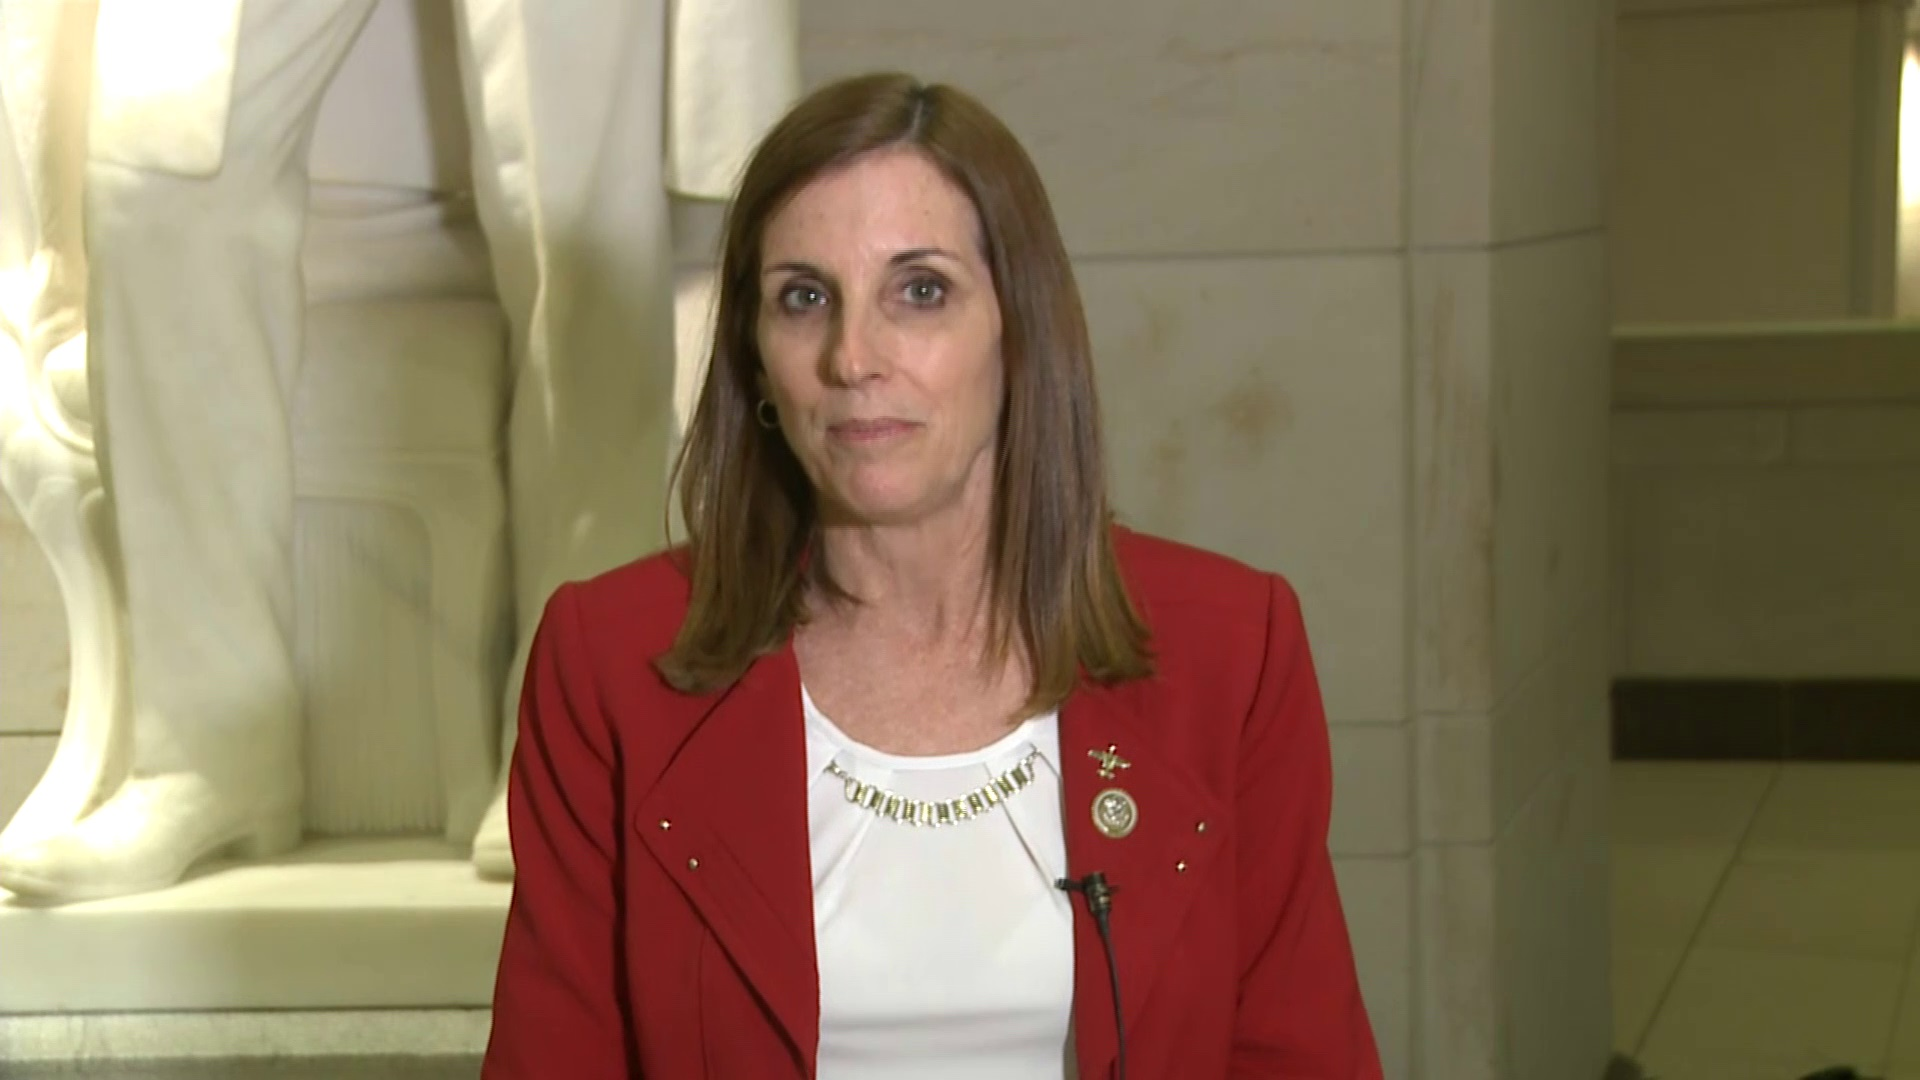 Republican Rep Martha McSally of Arizona could play a key role in preventing a Democratic takeover of the Senate in November But she has taken tens of